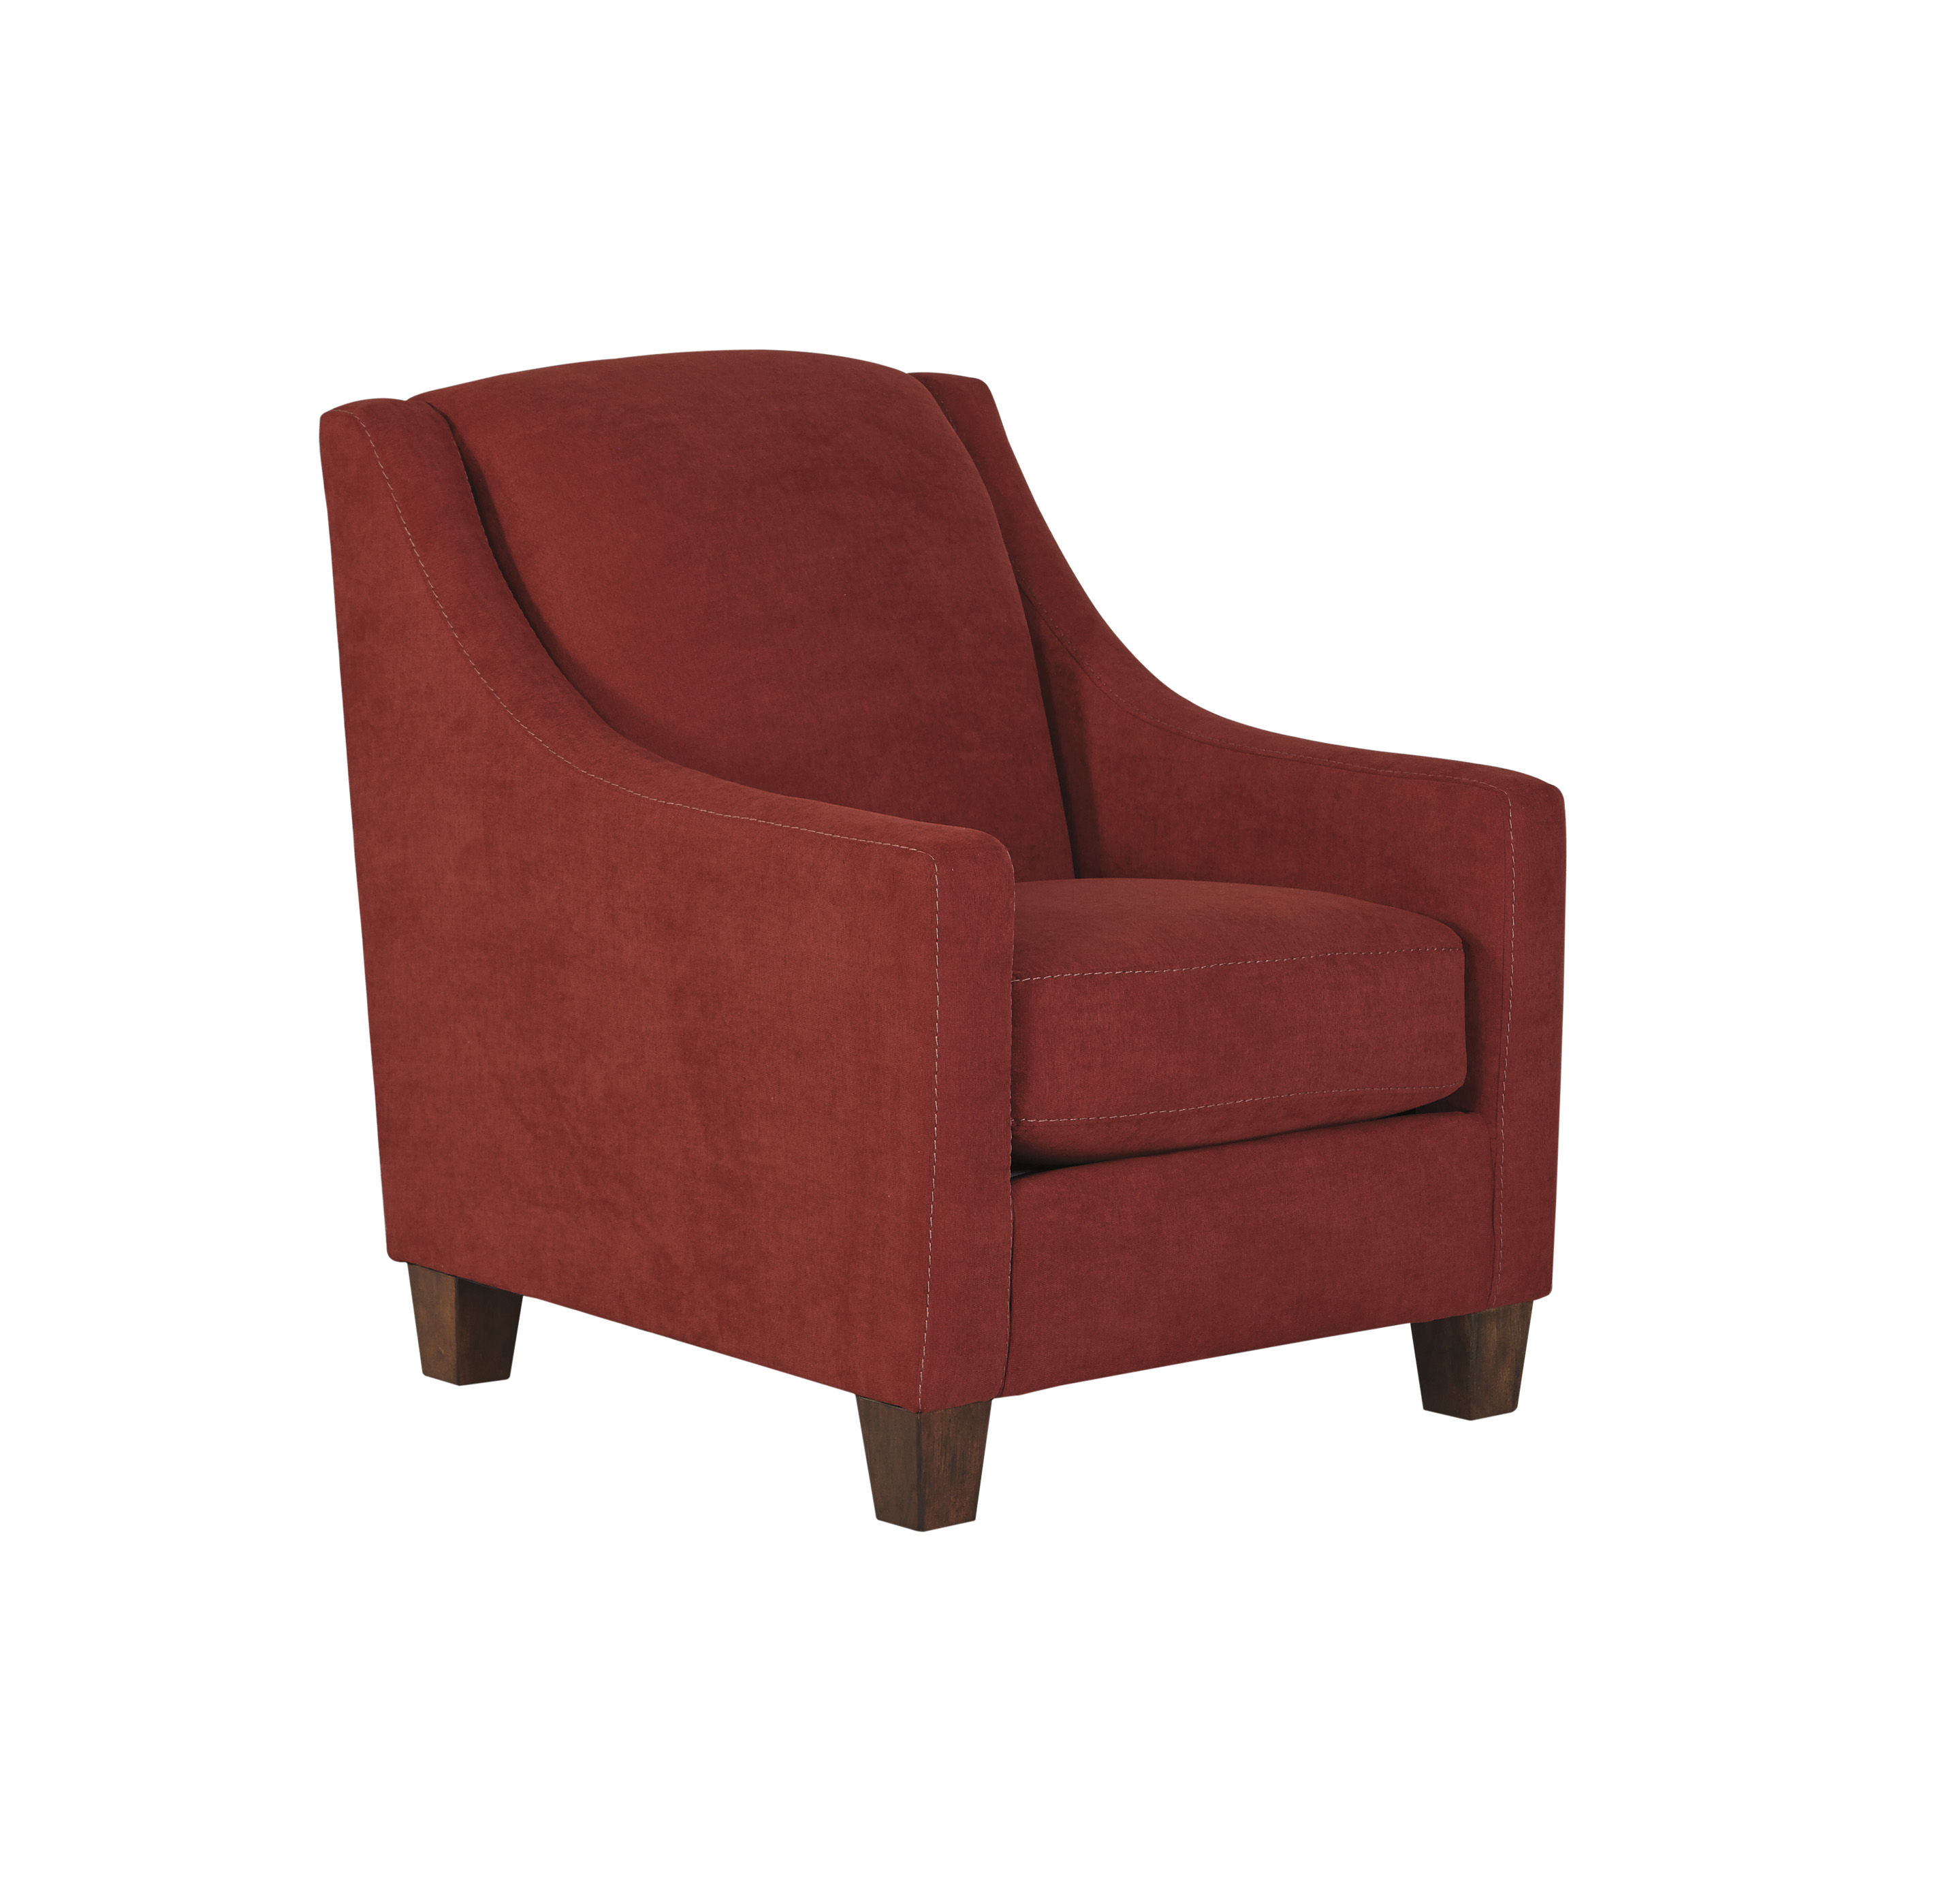 Ashley Furniture Maier Sienna Accent Chair The Classy Home